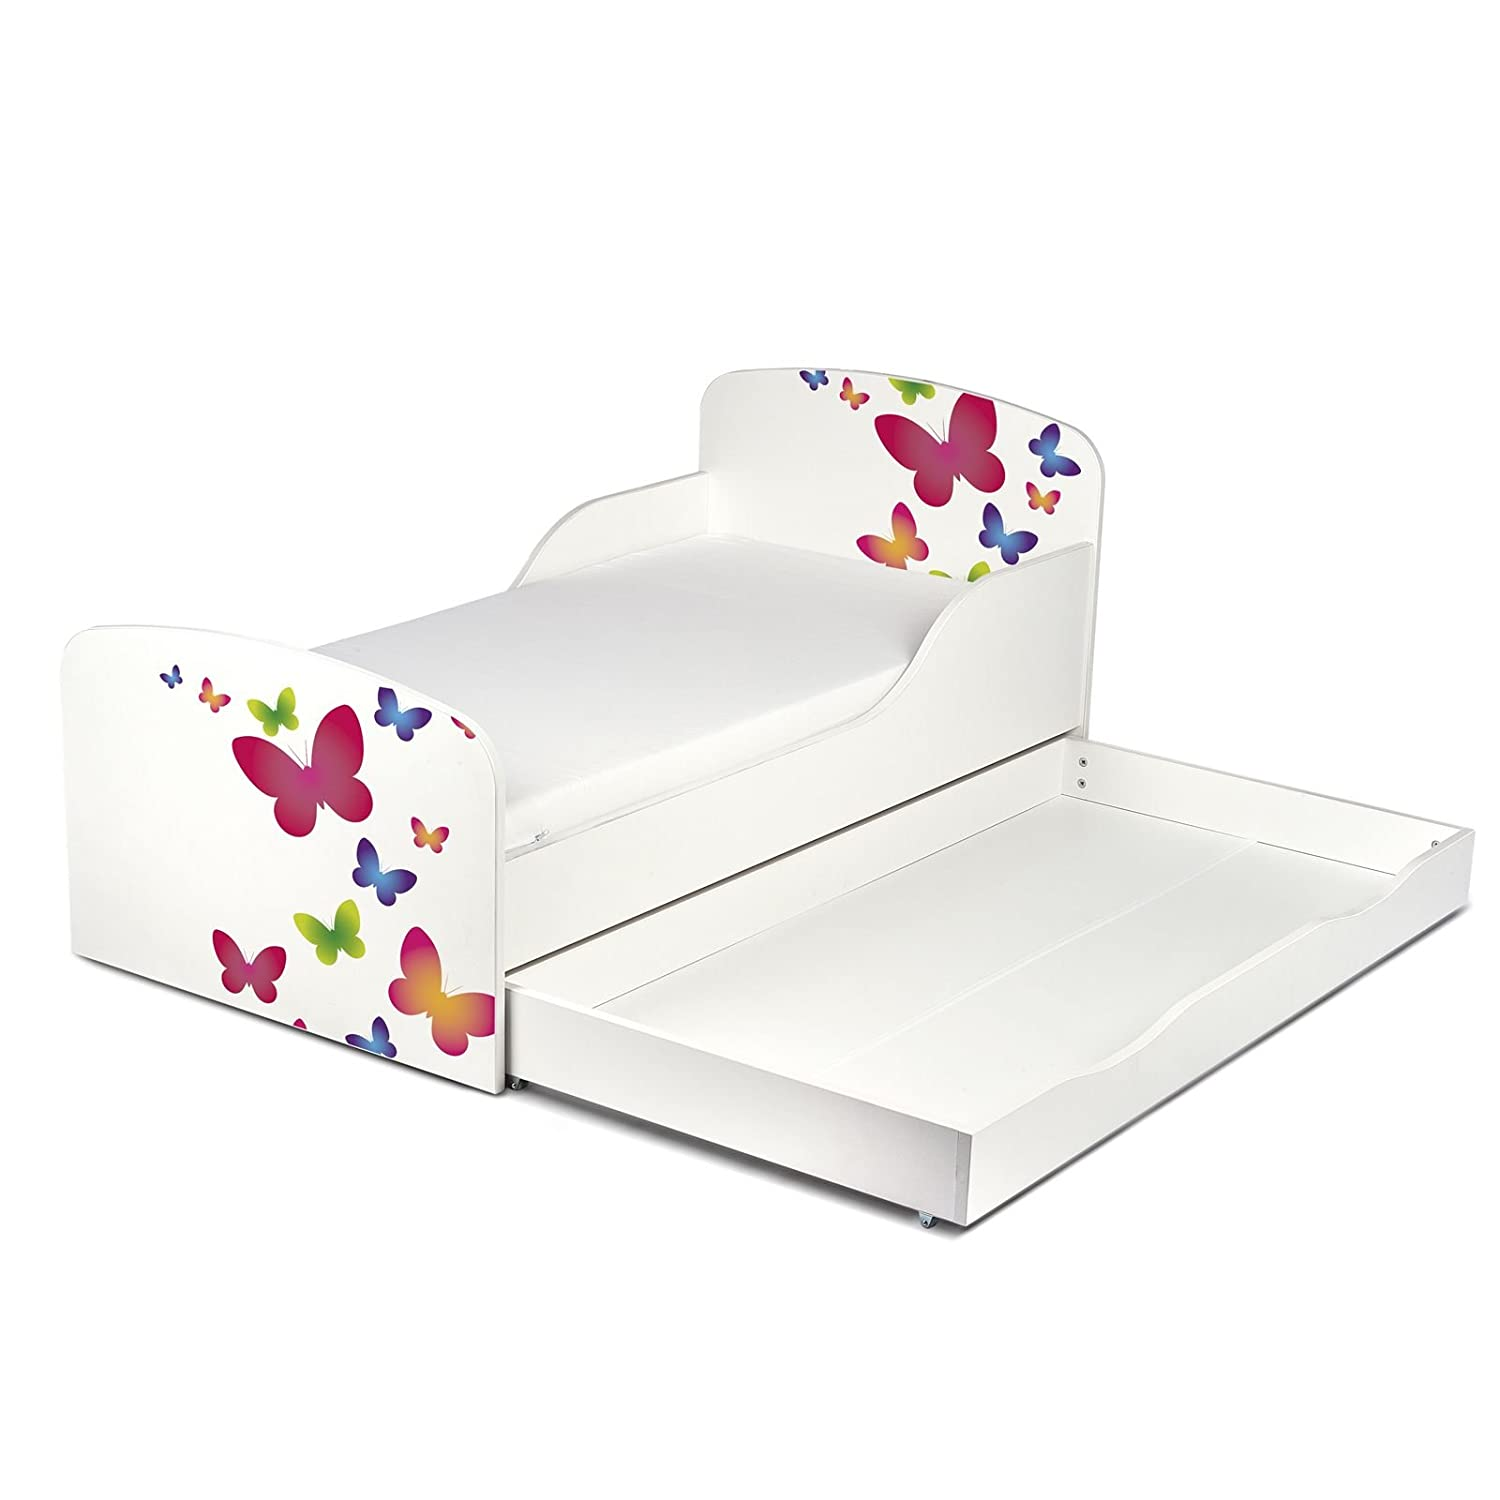 Price Right Home Butterflies Design MDF Toddler Bed with storage